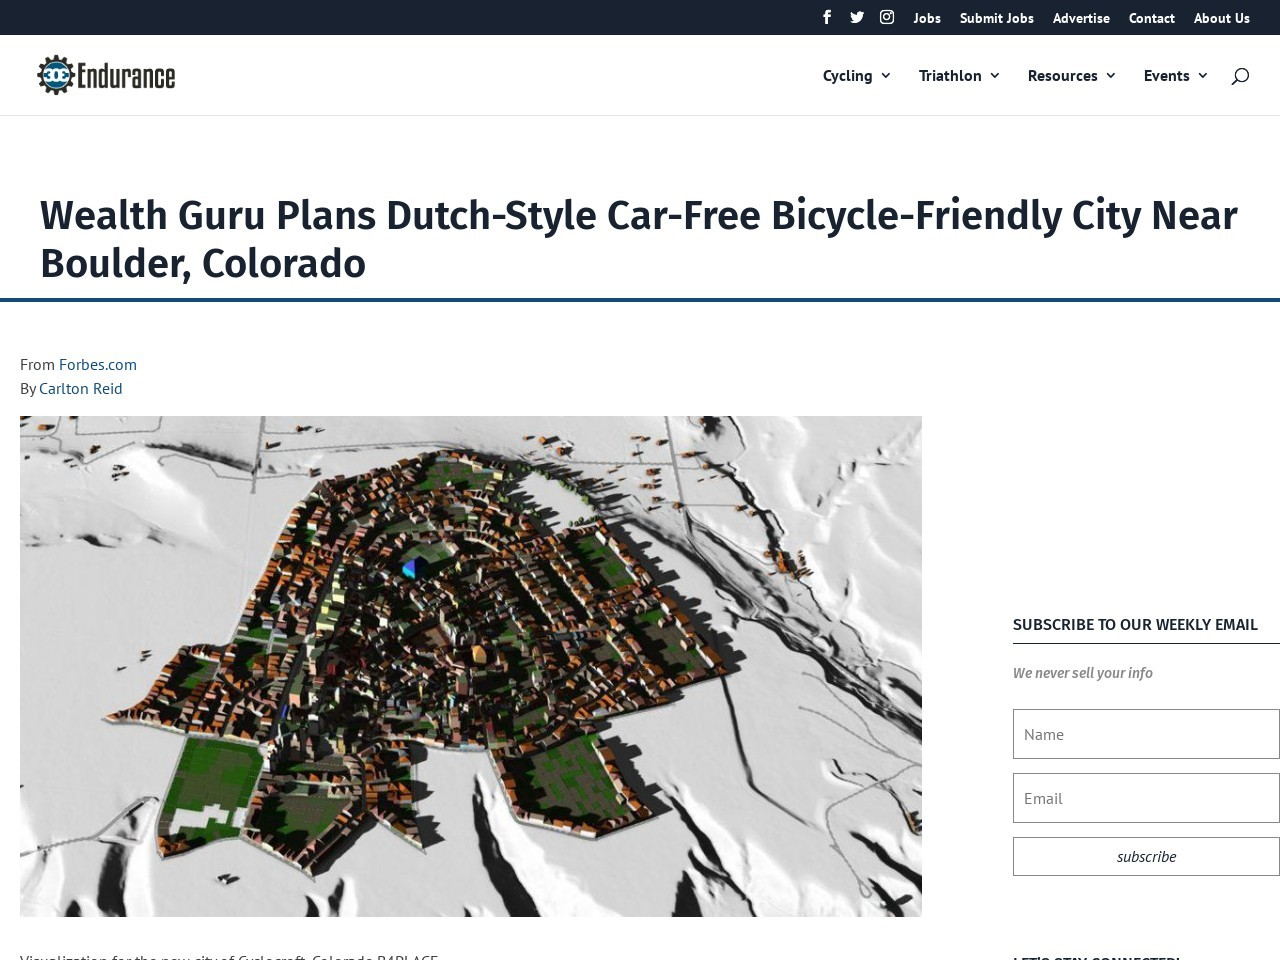 Wealth Guru Plans Dutch-Style Car-Free Bicycle-Friendly City Near Boulder, Colorado